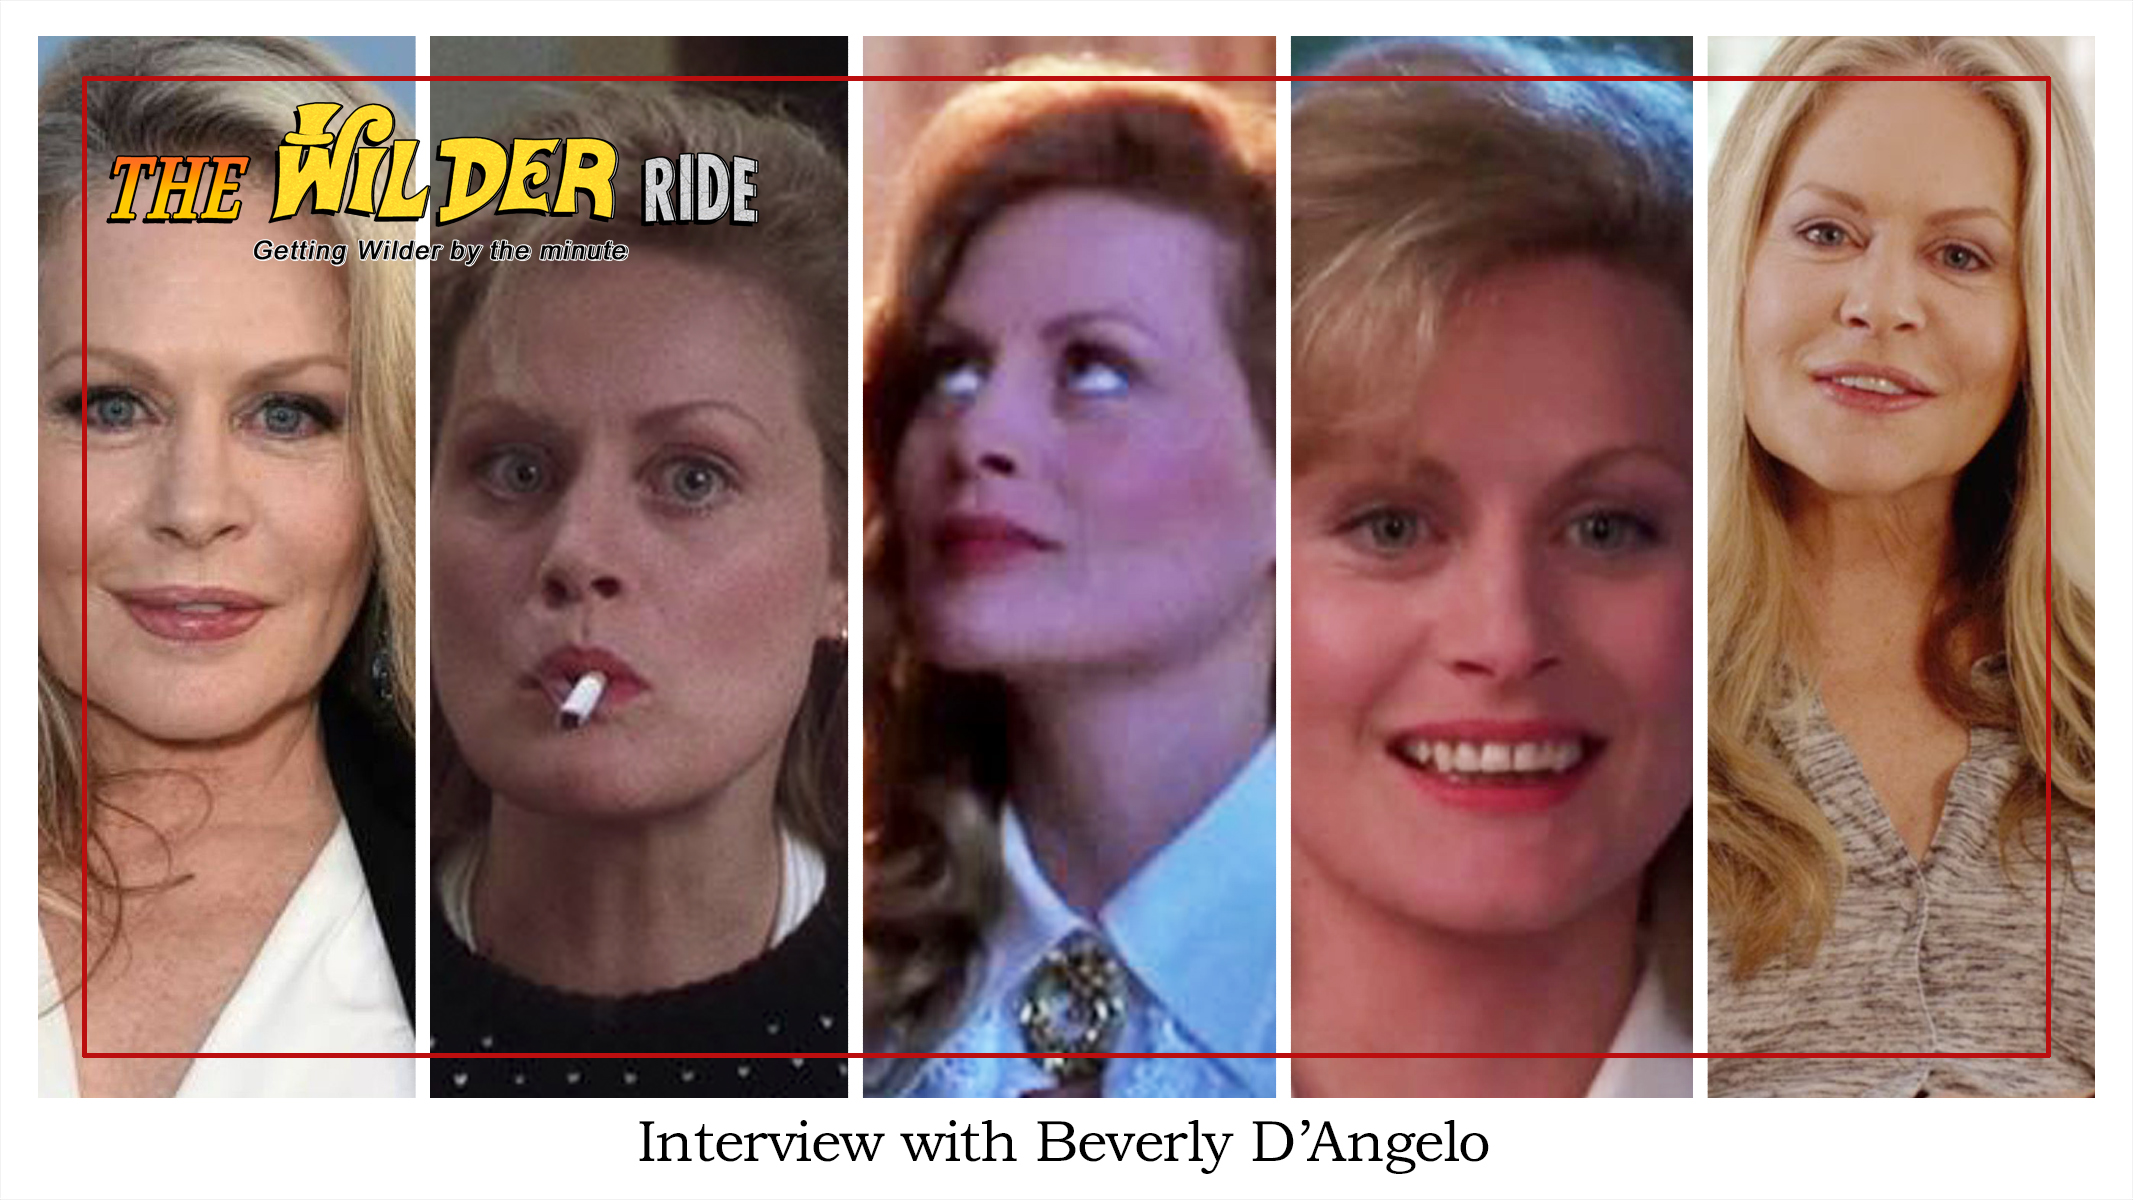 Interview with Beverly D'Angelo